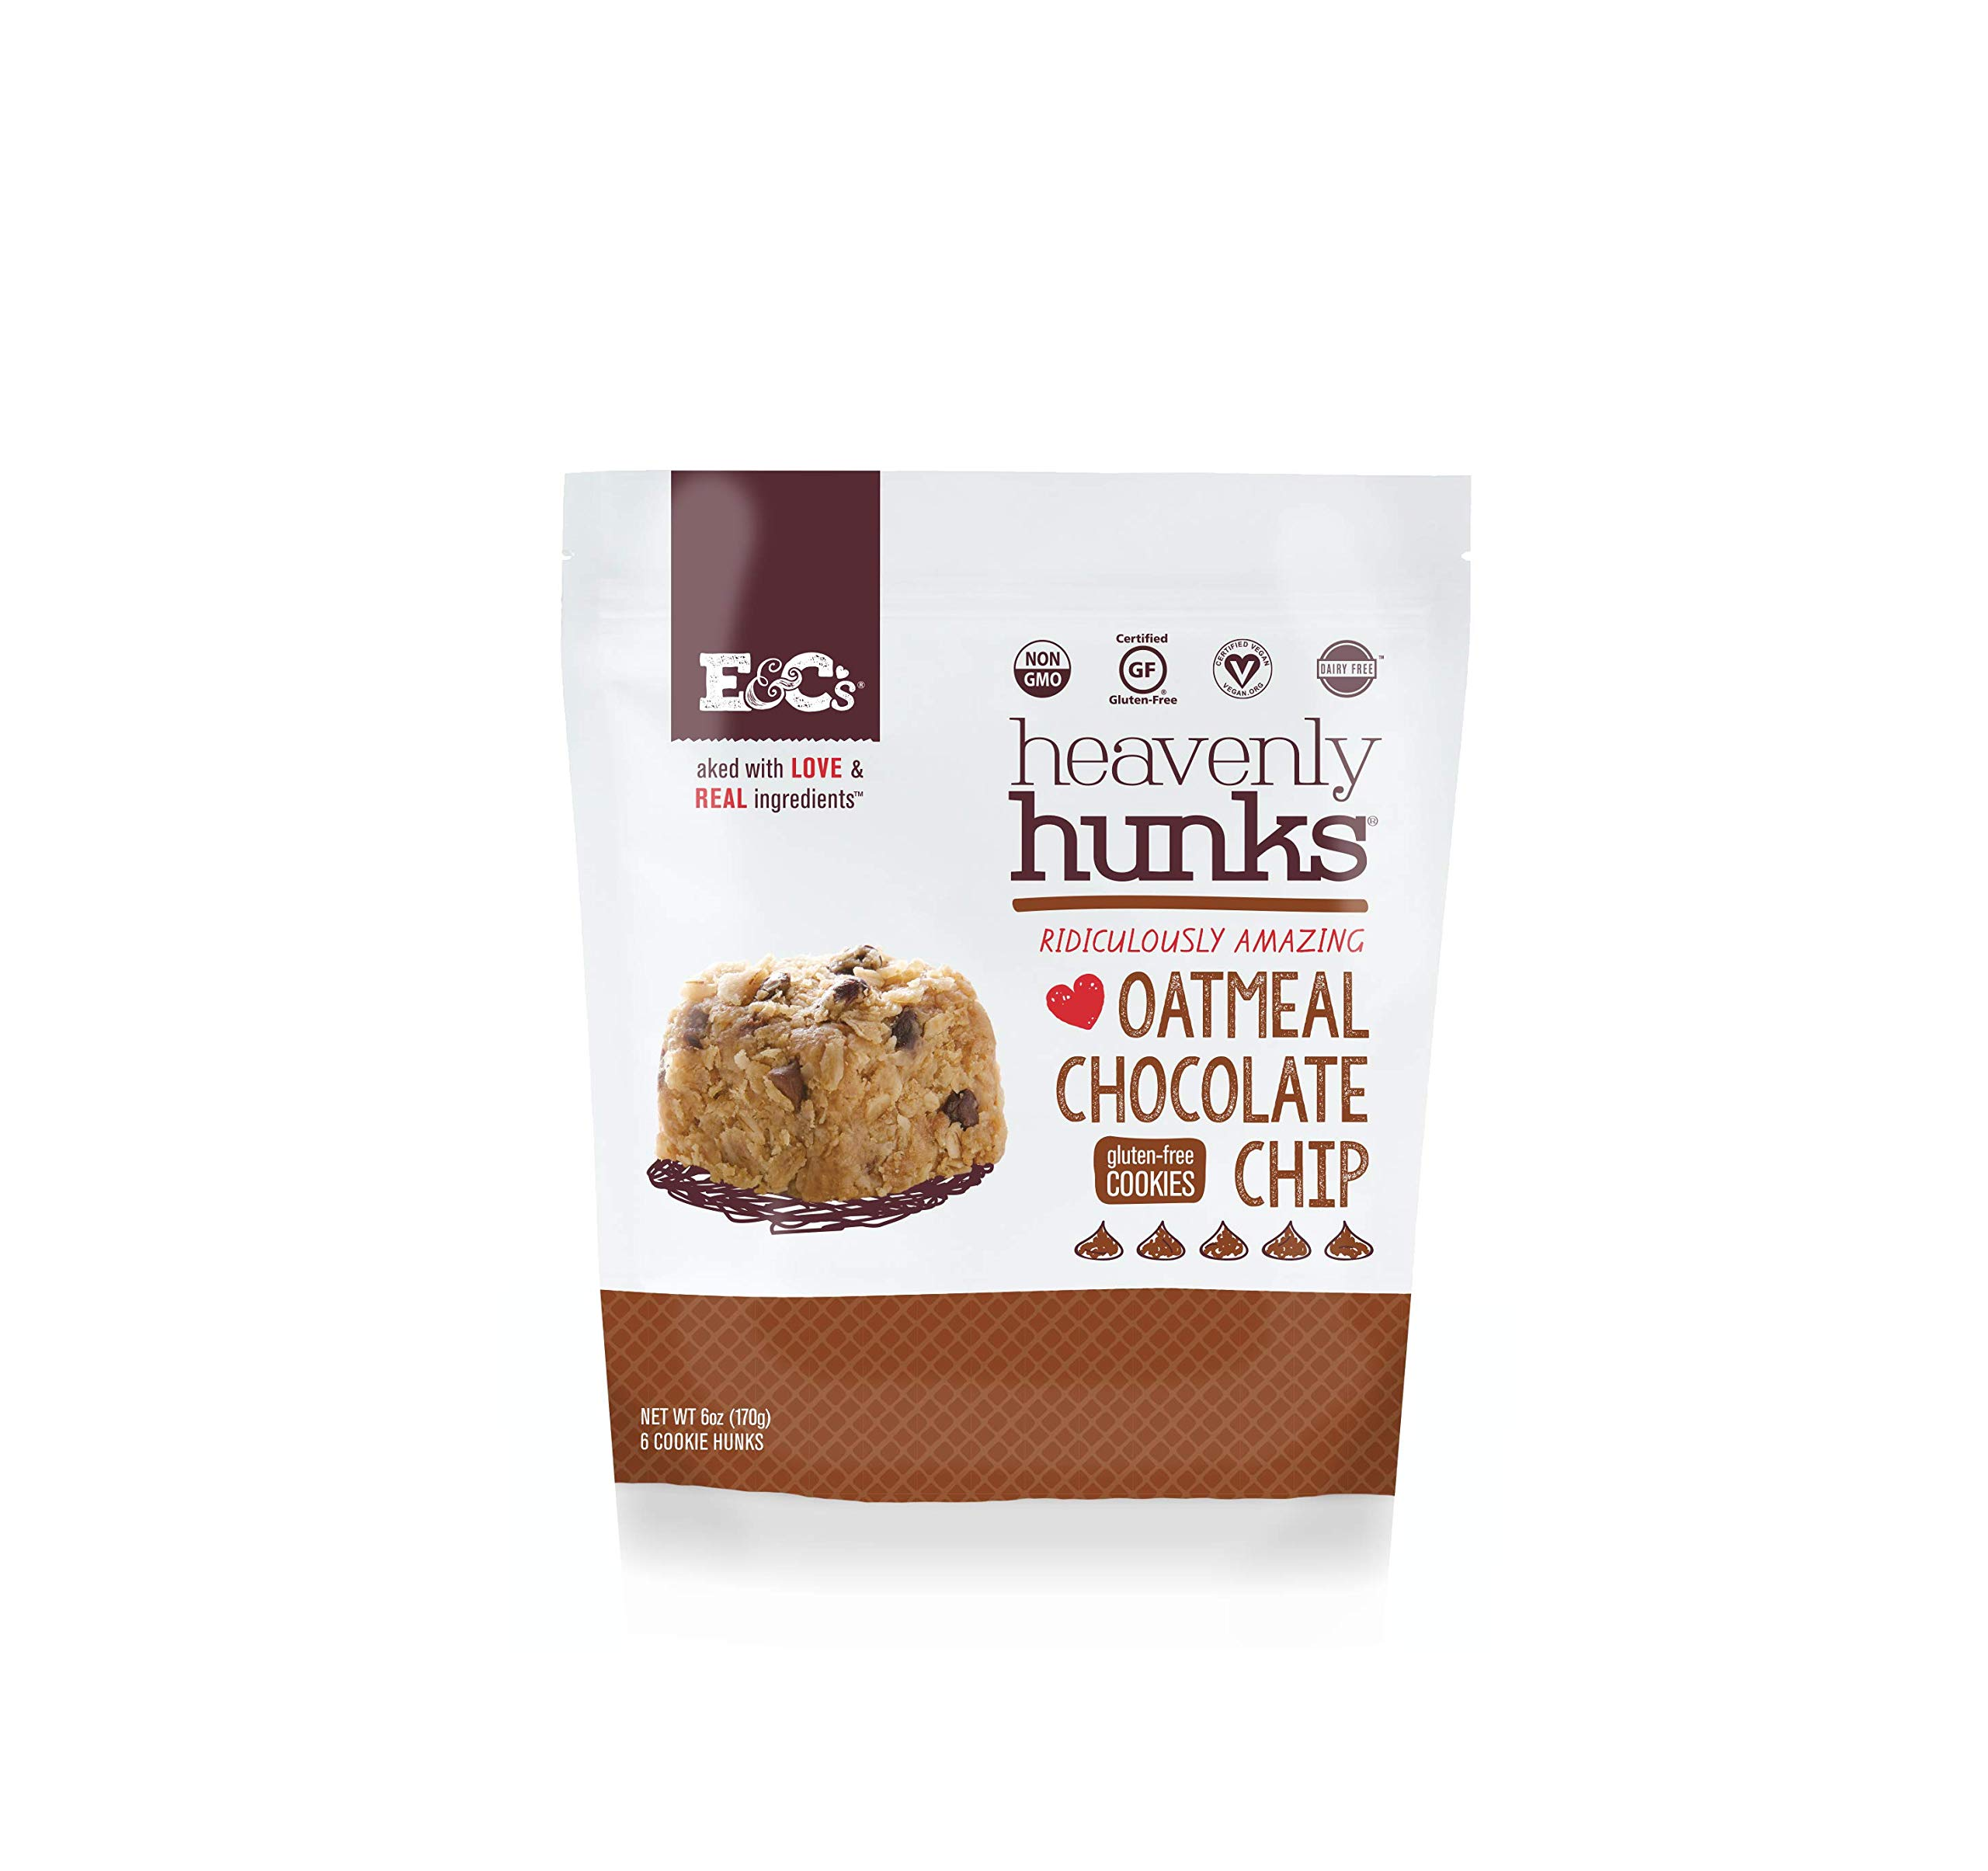 Heavenly Hunks (Oatmeal Chocolate Chip, 1 case (6/6oz bags)) by E&C's Snacks